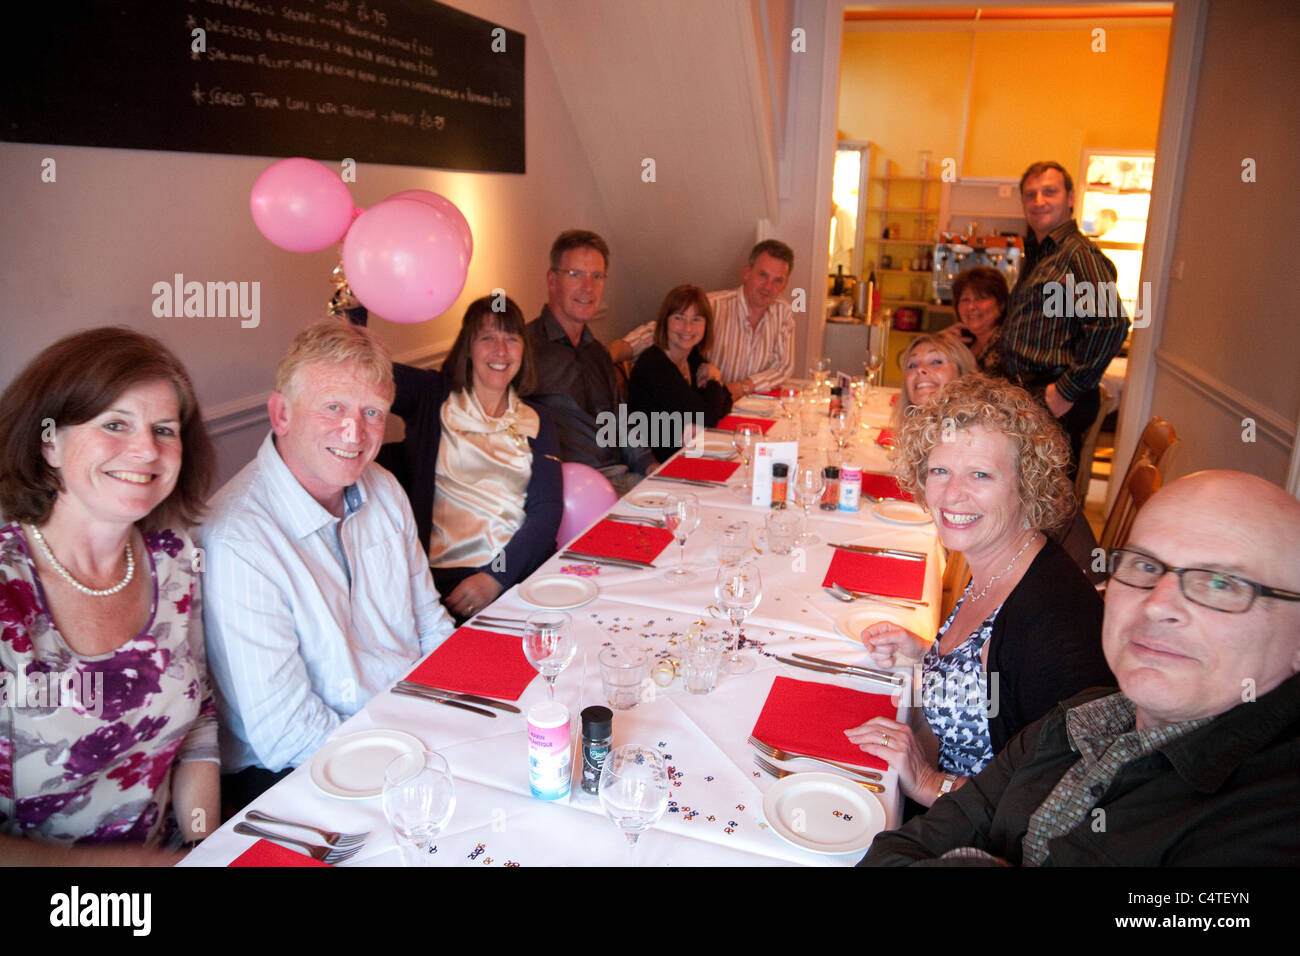 A group of 50 somethings celebrating a 50th birthday in a restaurant, UK - Stock Image